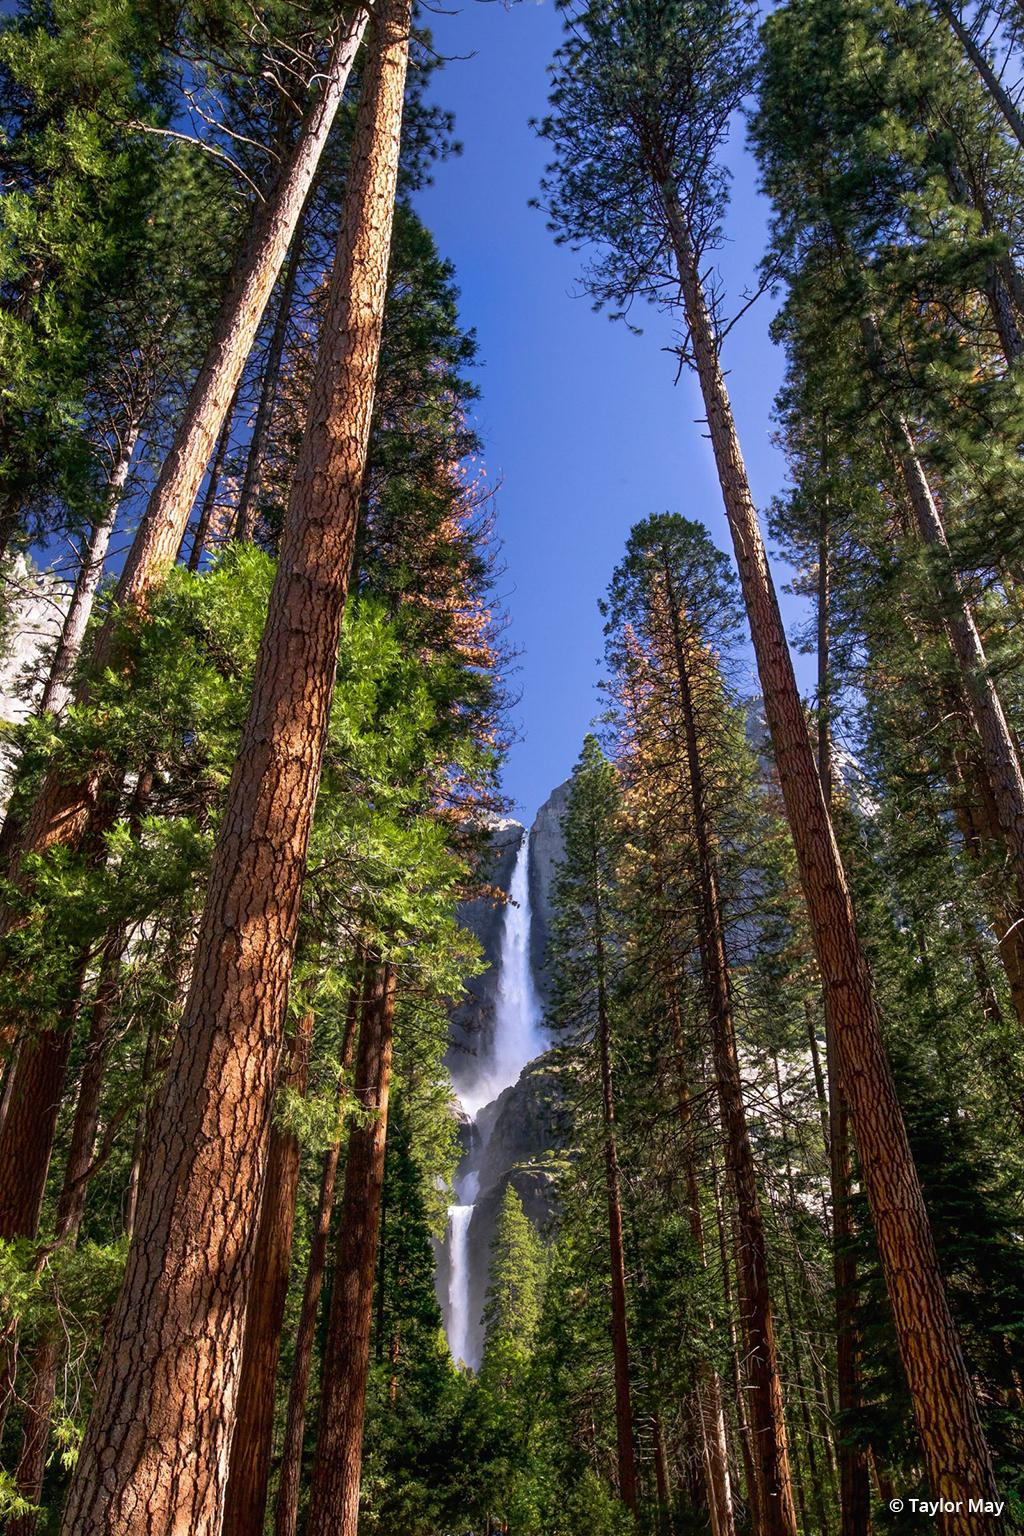 """Today's Photo Of The Day is """"Yosemite Falls Portrait"""" by Taylor May. Location: Yosemite National Park, California."""